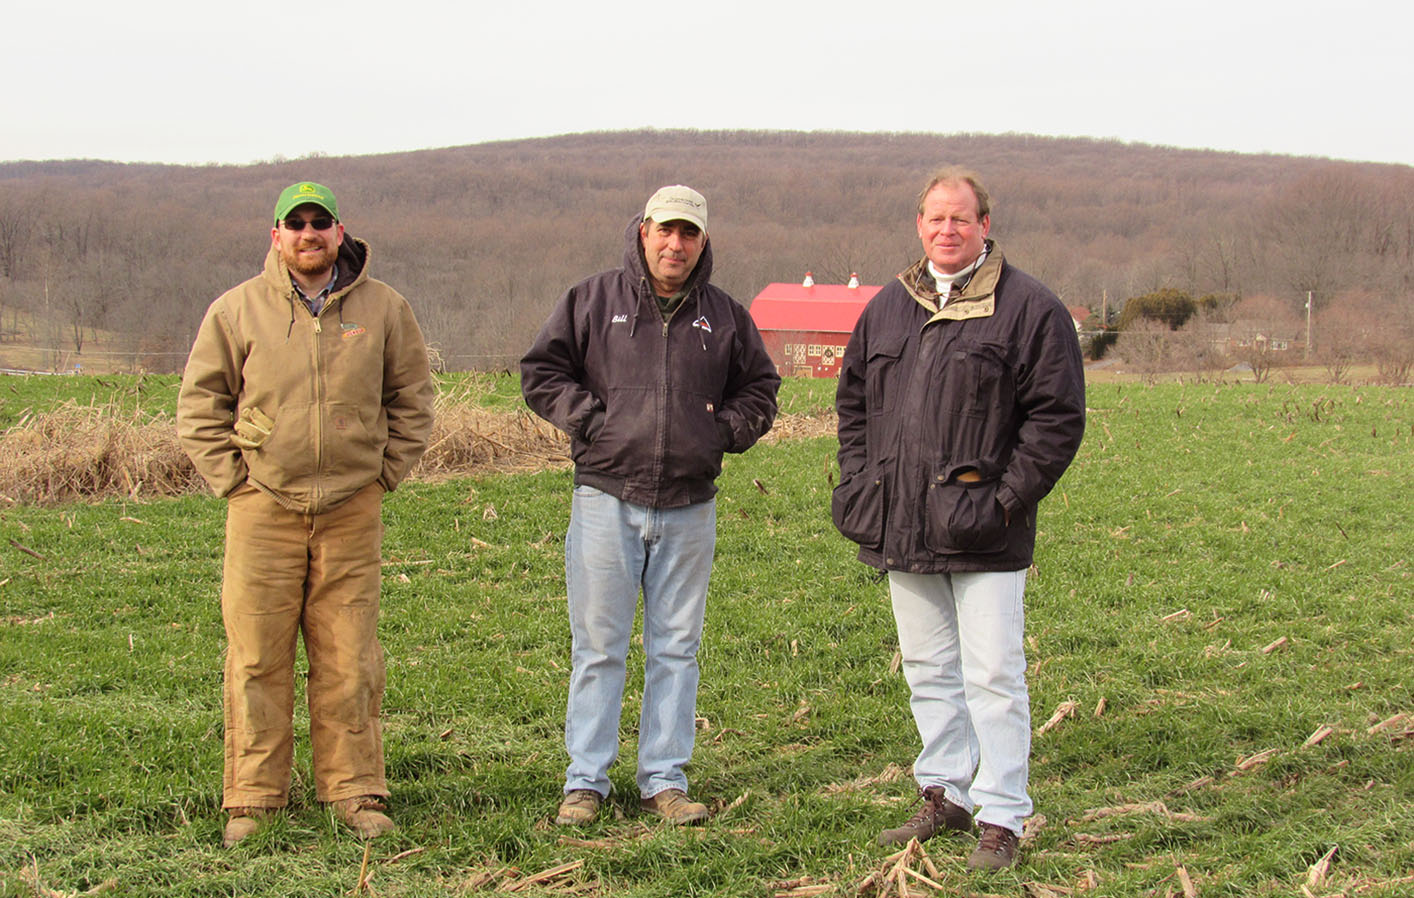 Matt Beam, his father Bill Beam and Jack Stefferud of NLT at Yoder Farm